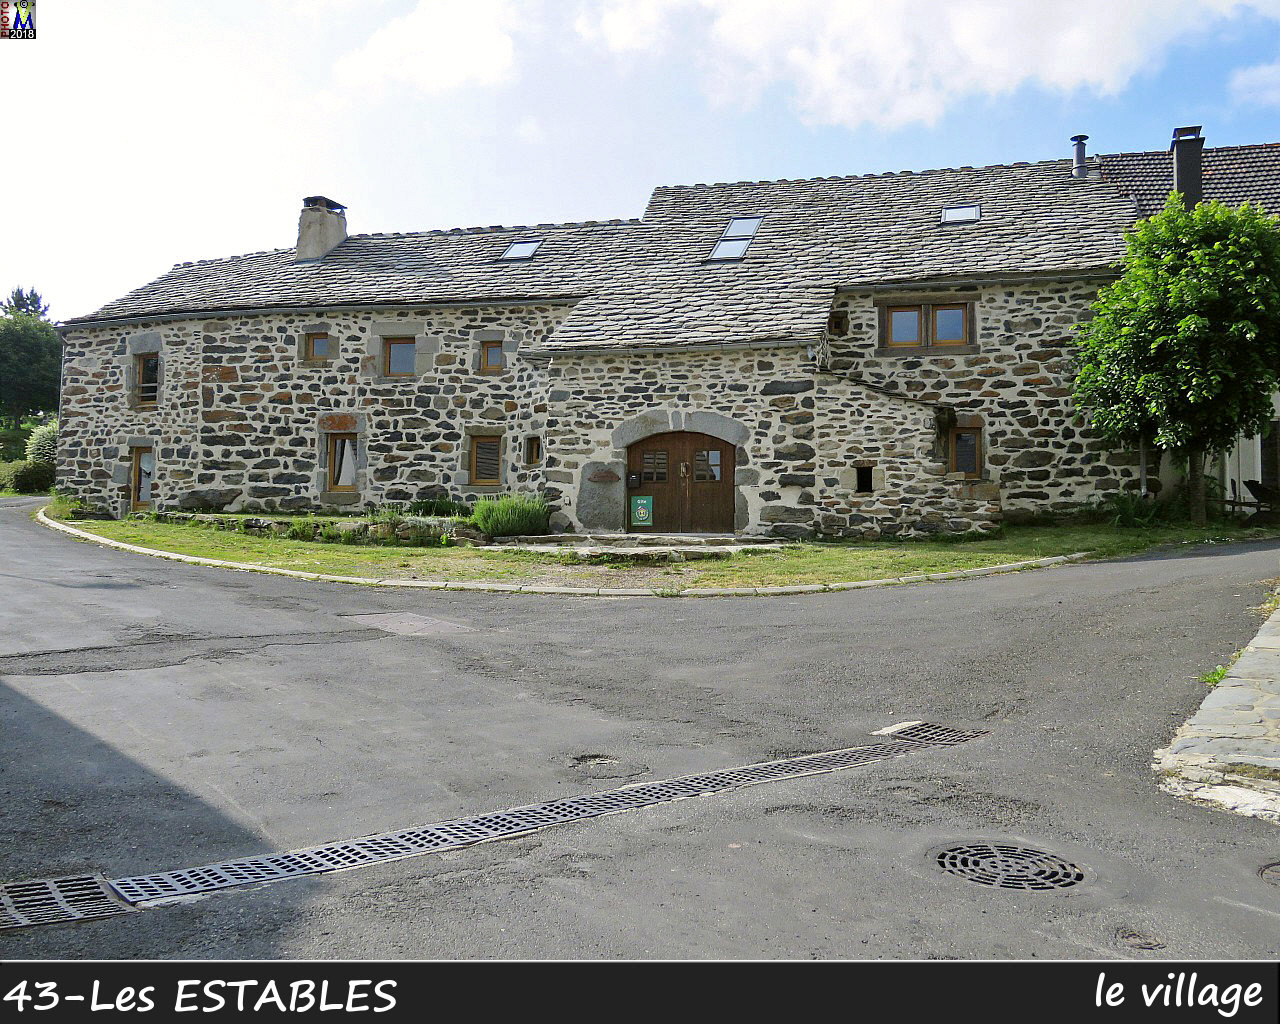 43LesESTABLES_village_106.jpg